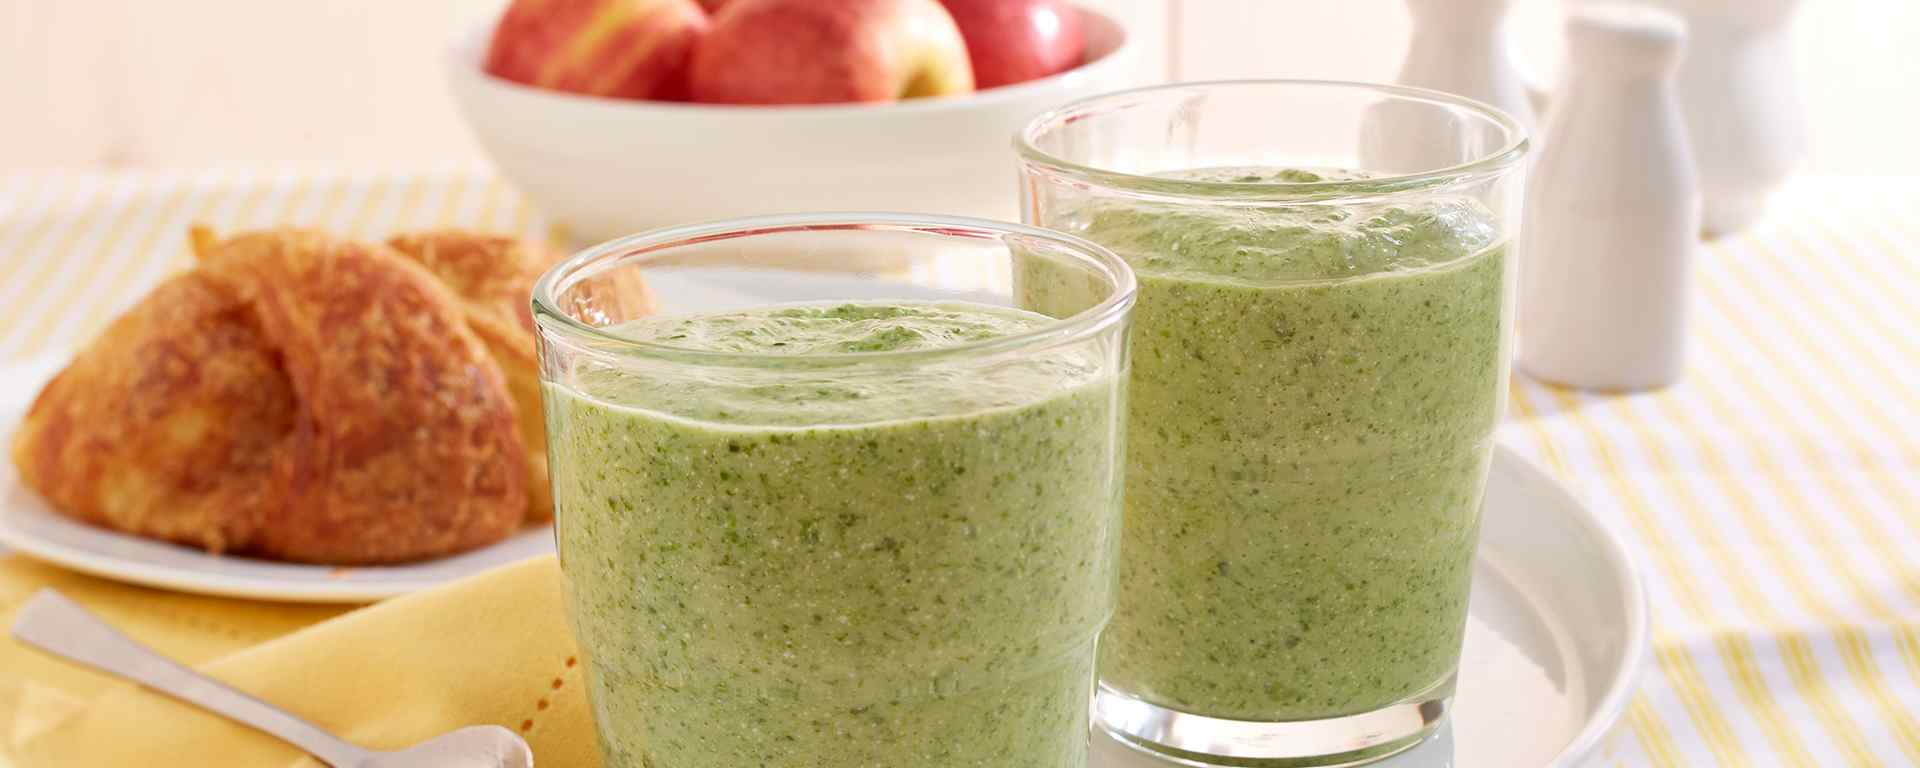 Photo for - Apple & Kale Smoothie